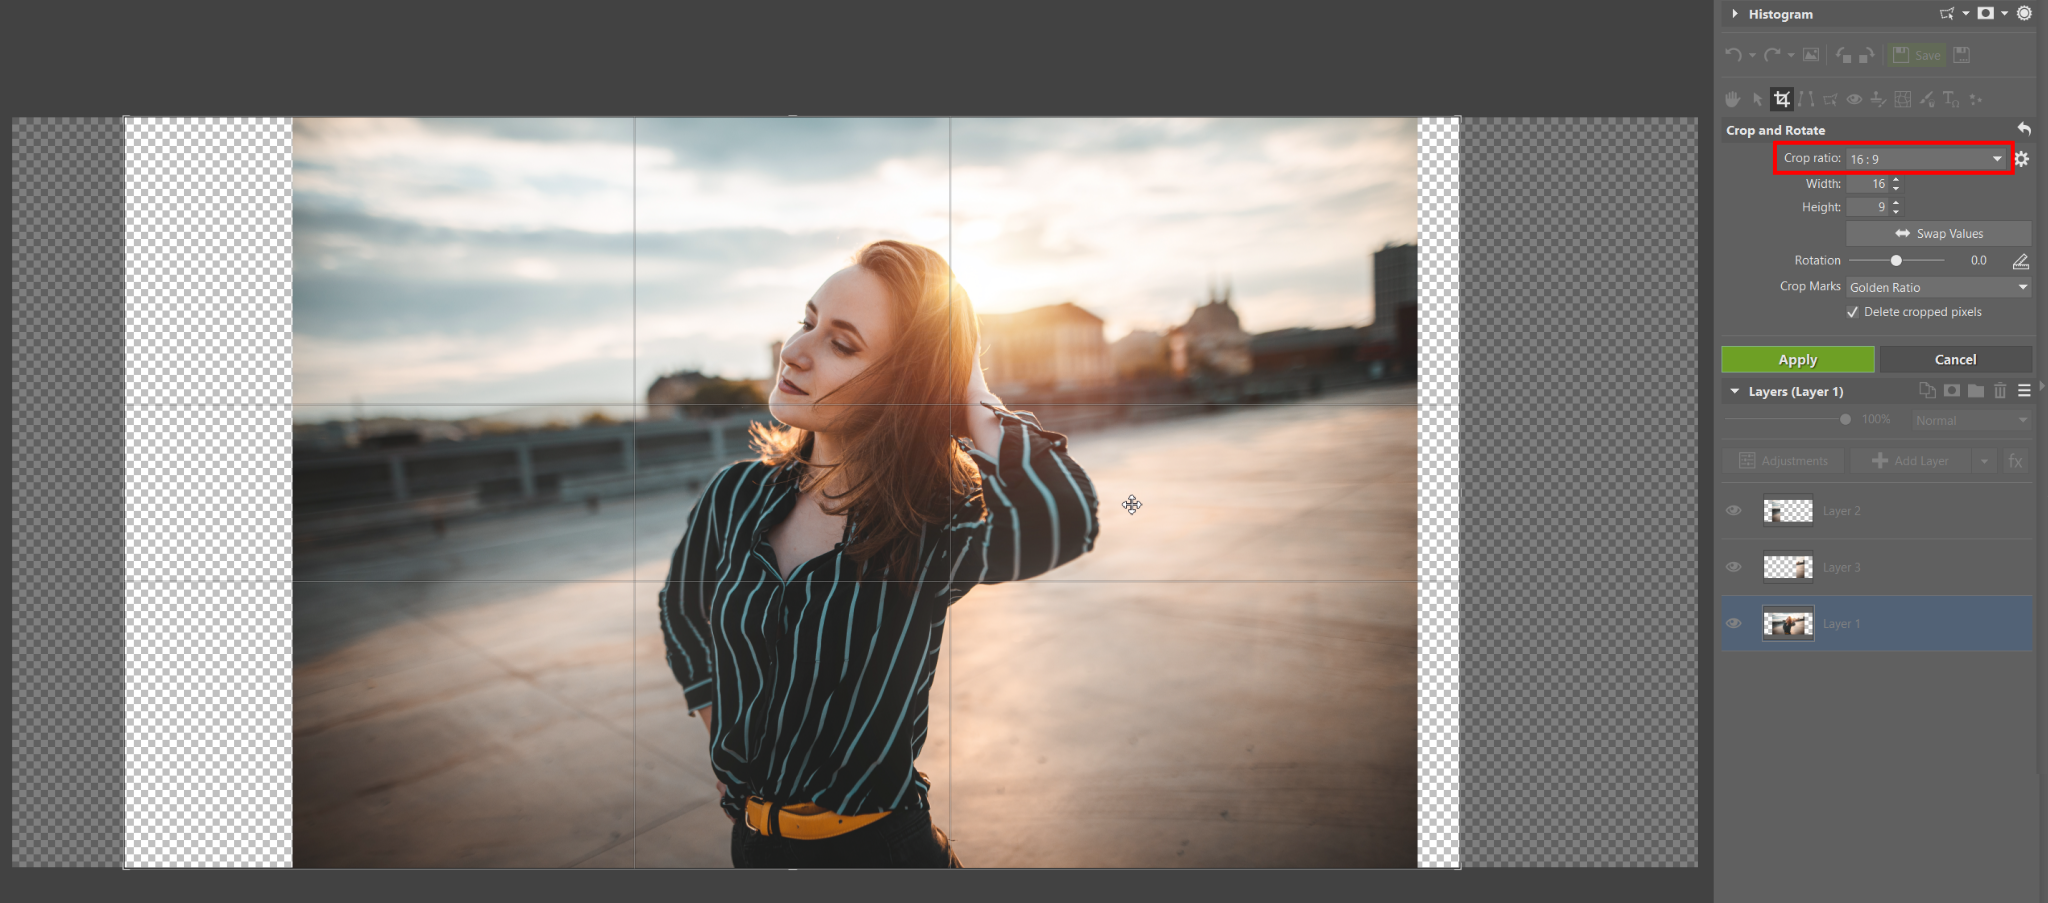 Stretch Your Photos to a Wide-angle Format. You Can Do It in the Editor With No Cropping or Losses.